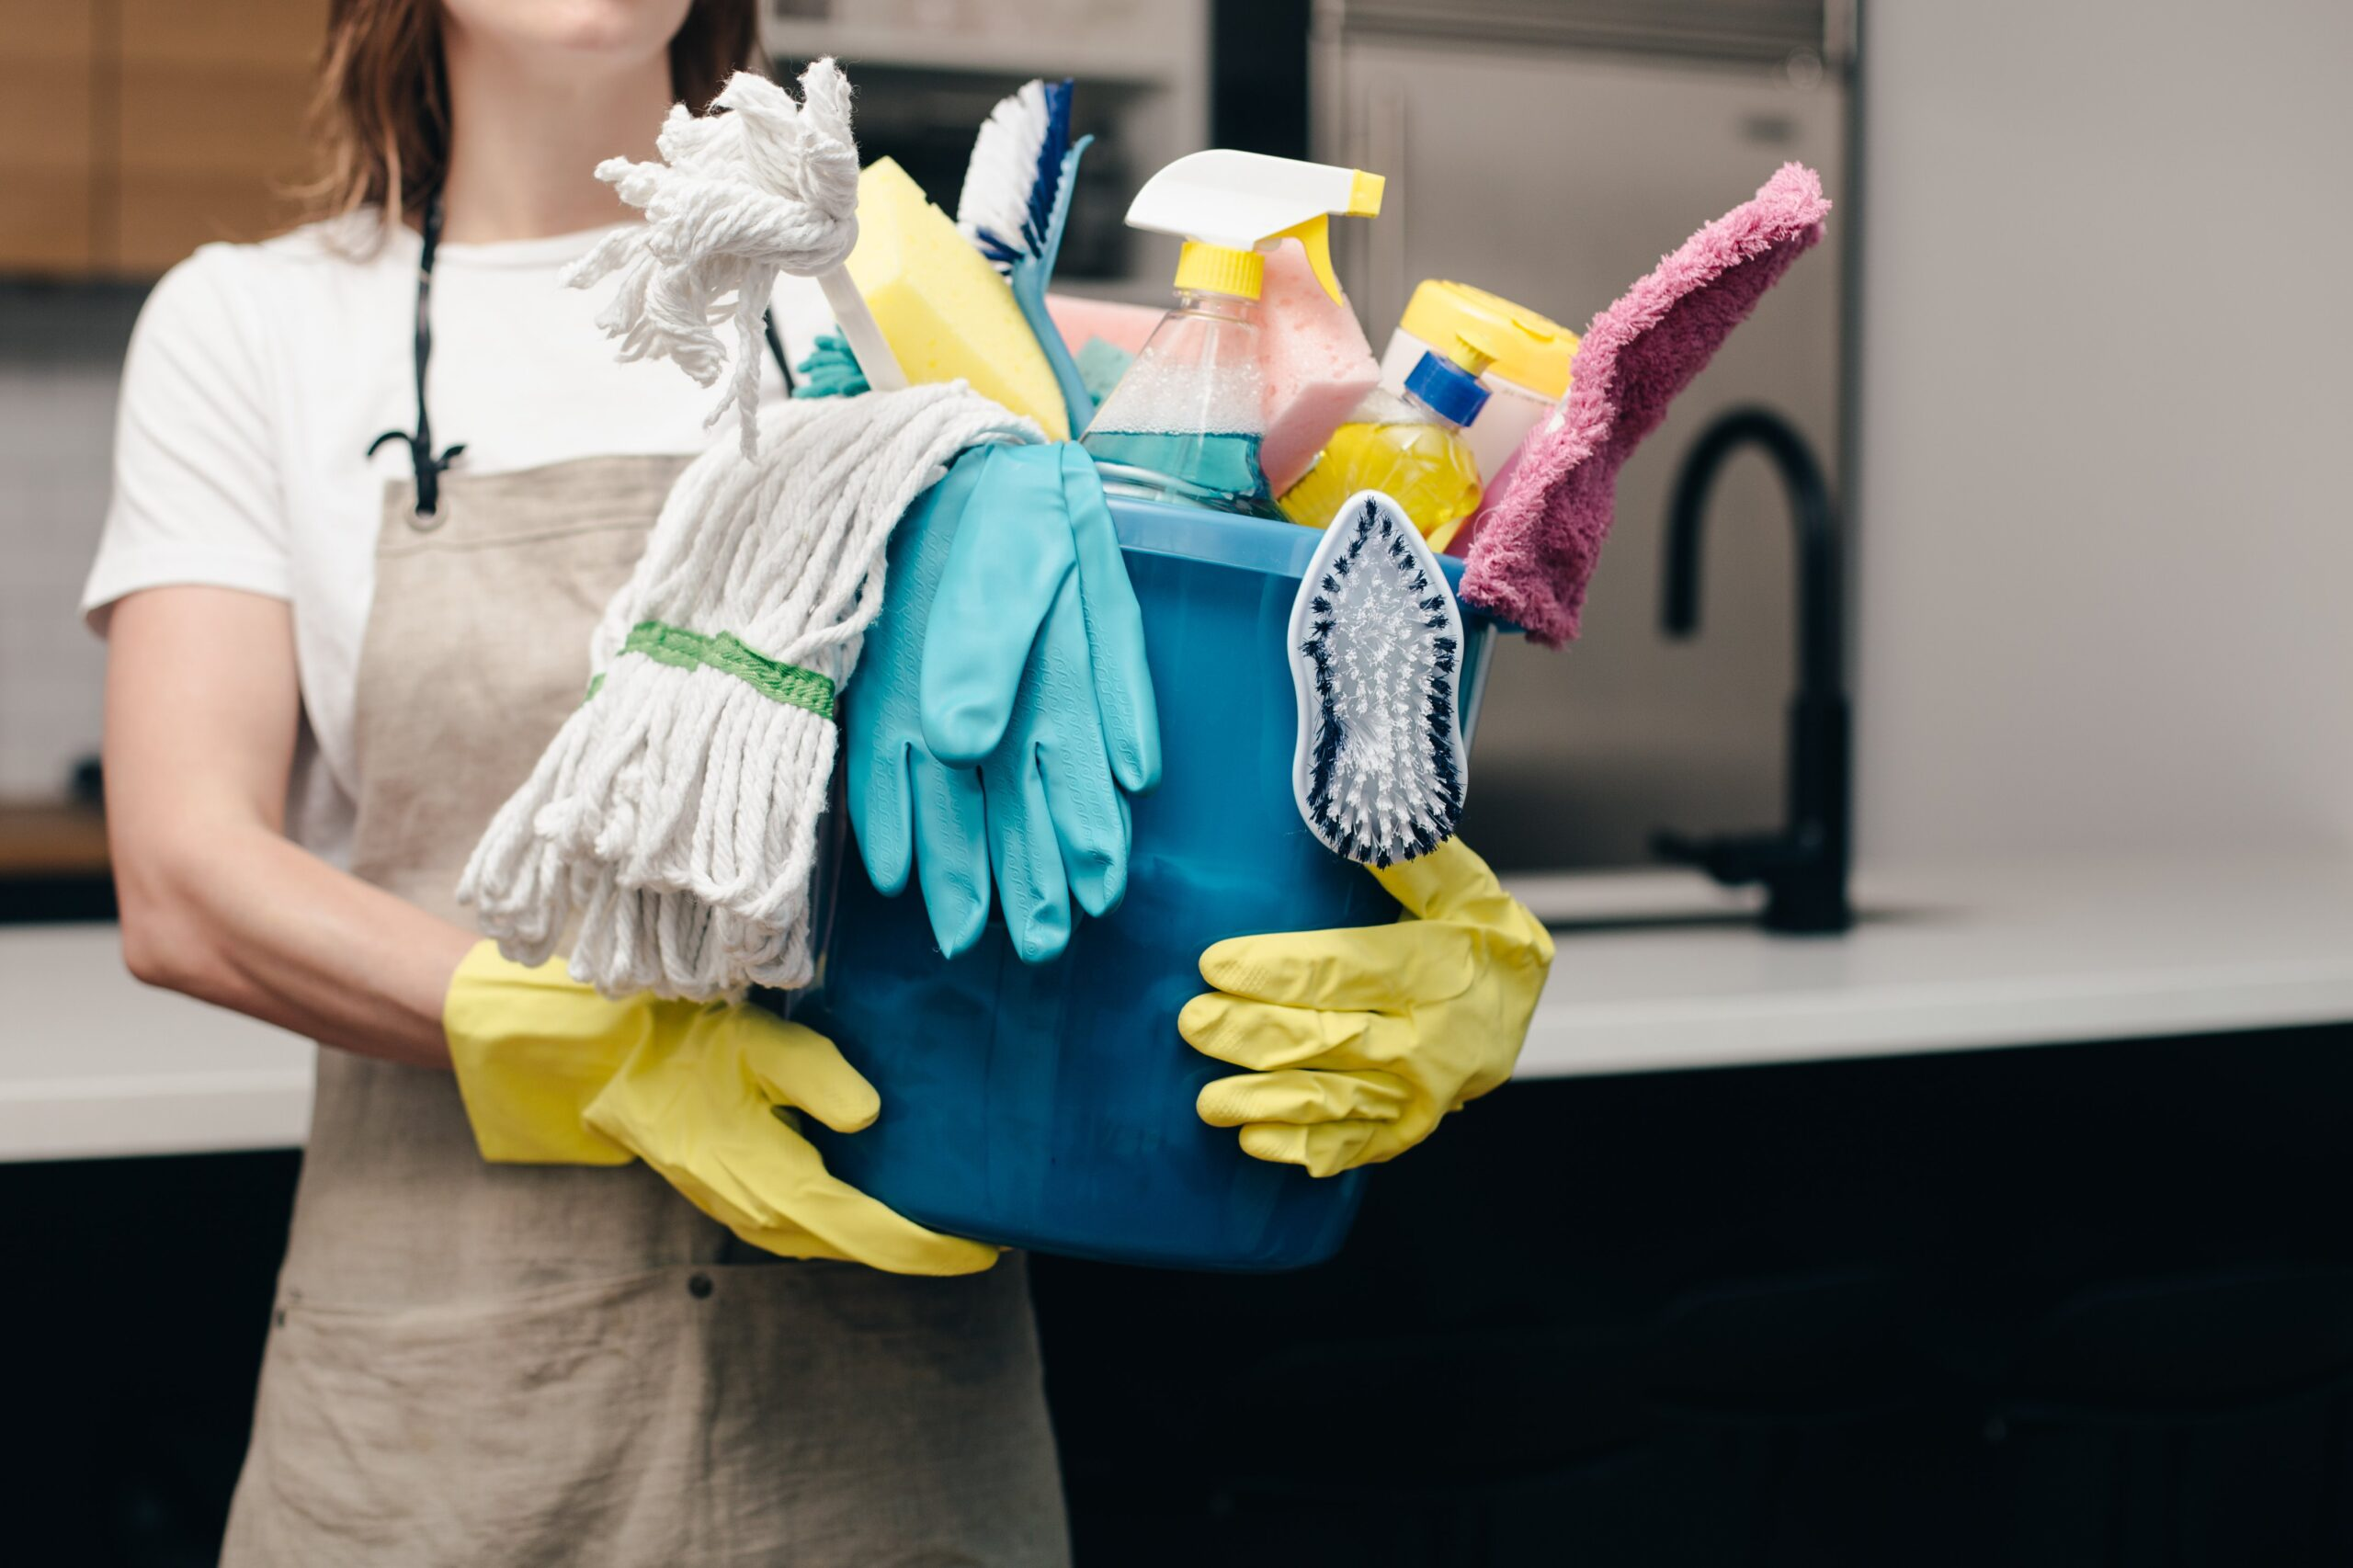 bond cleaning services gold coast image 1